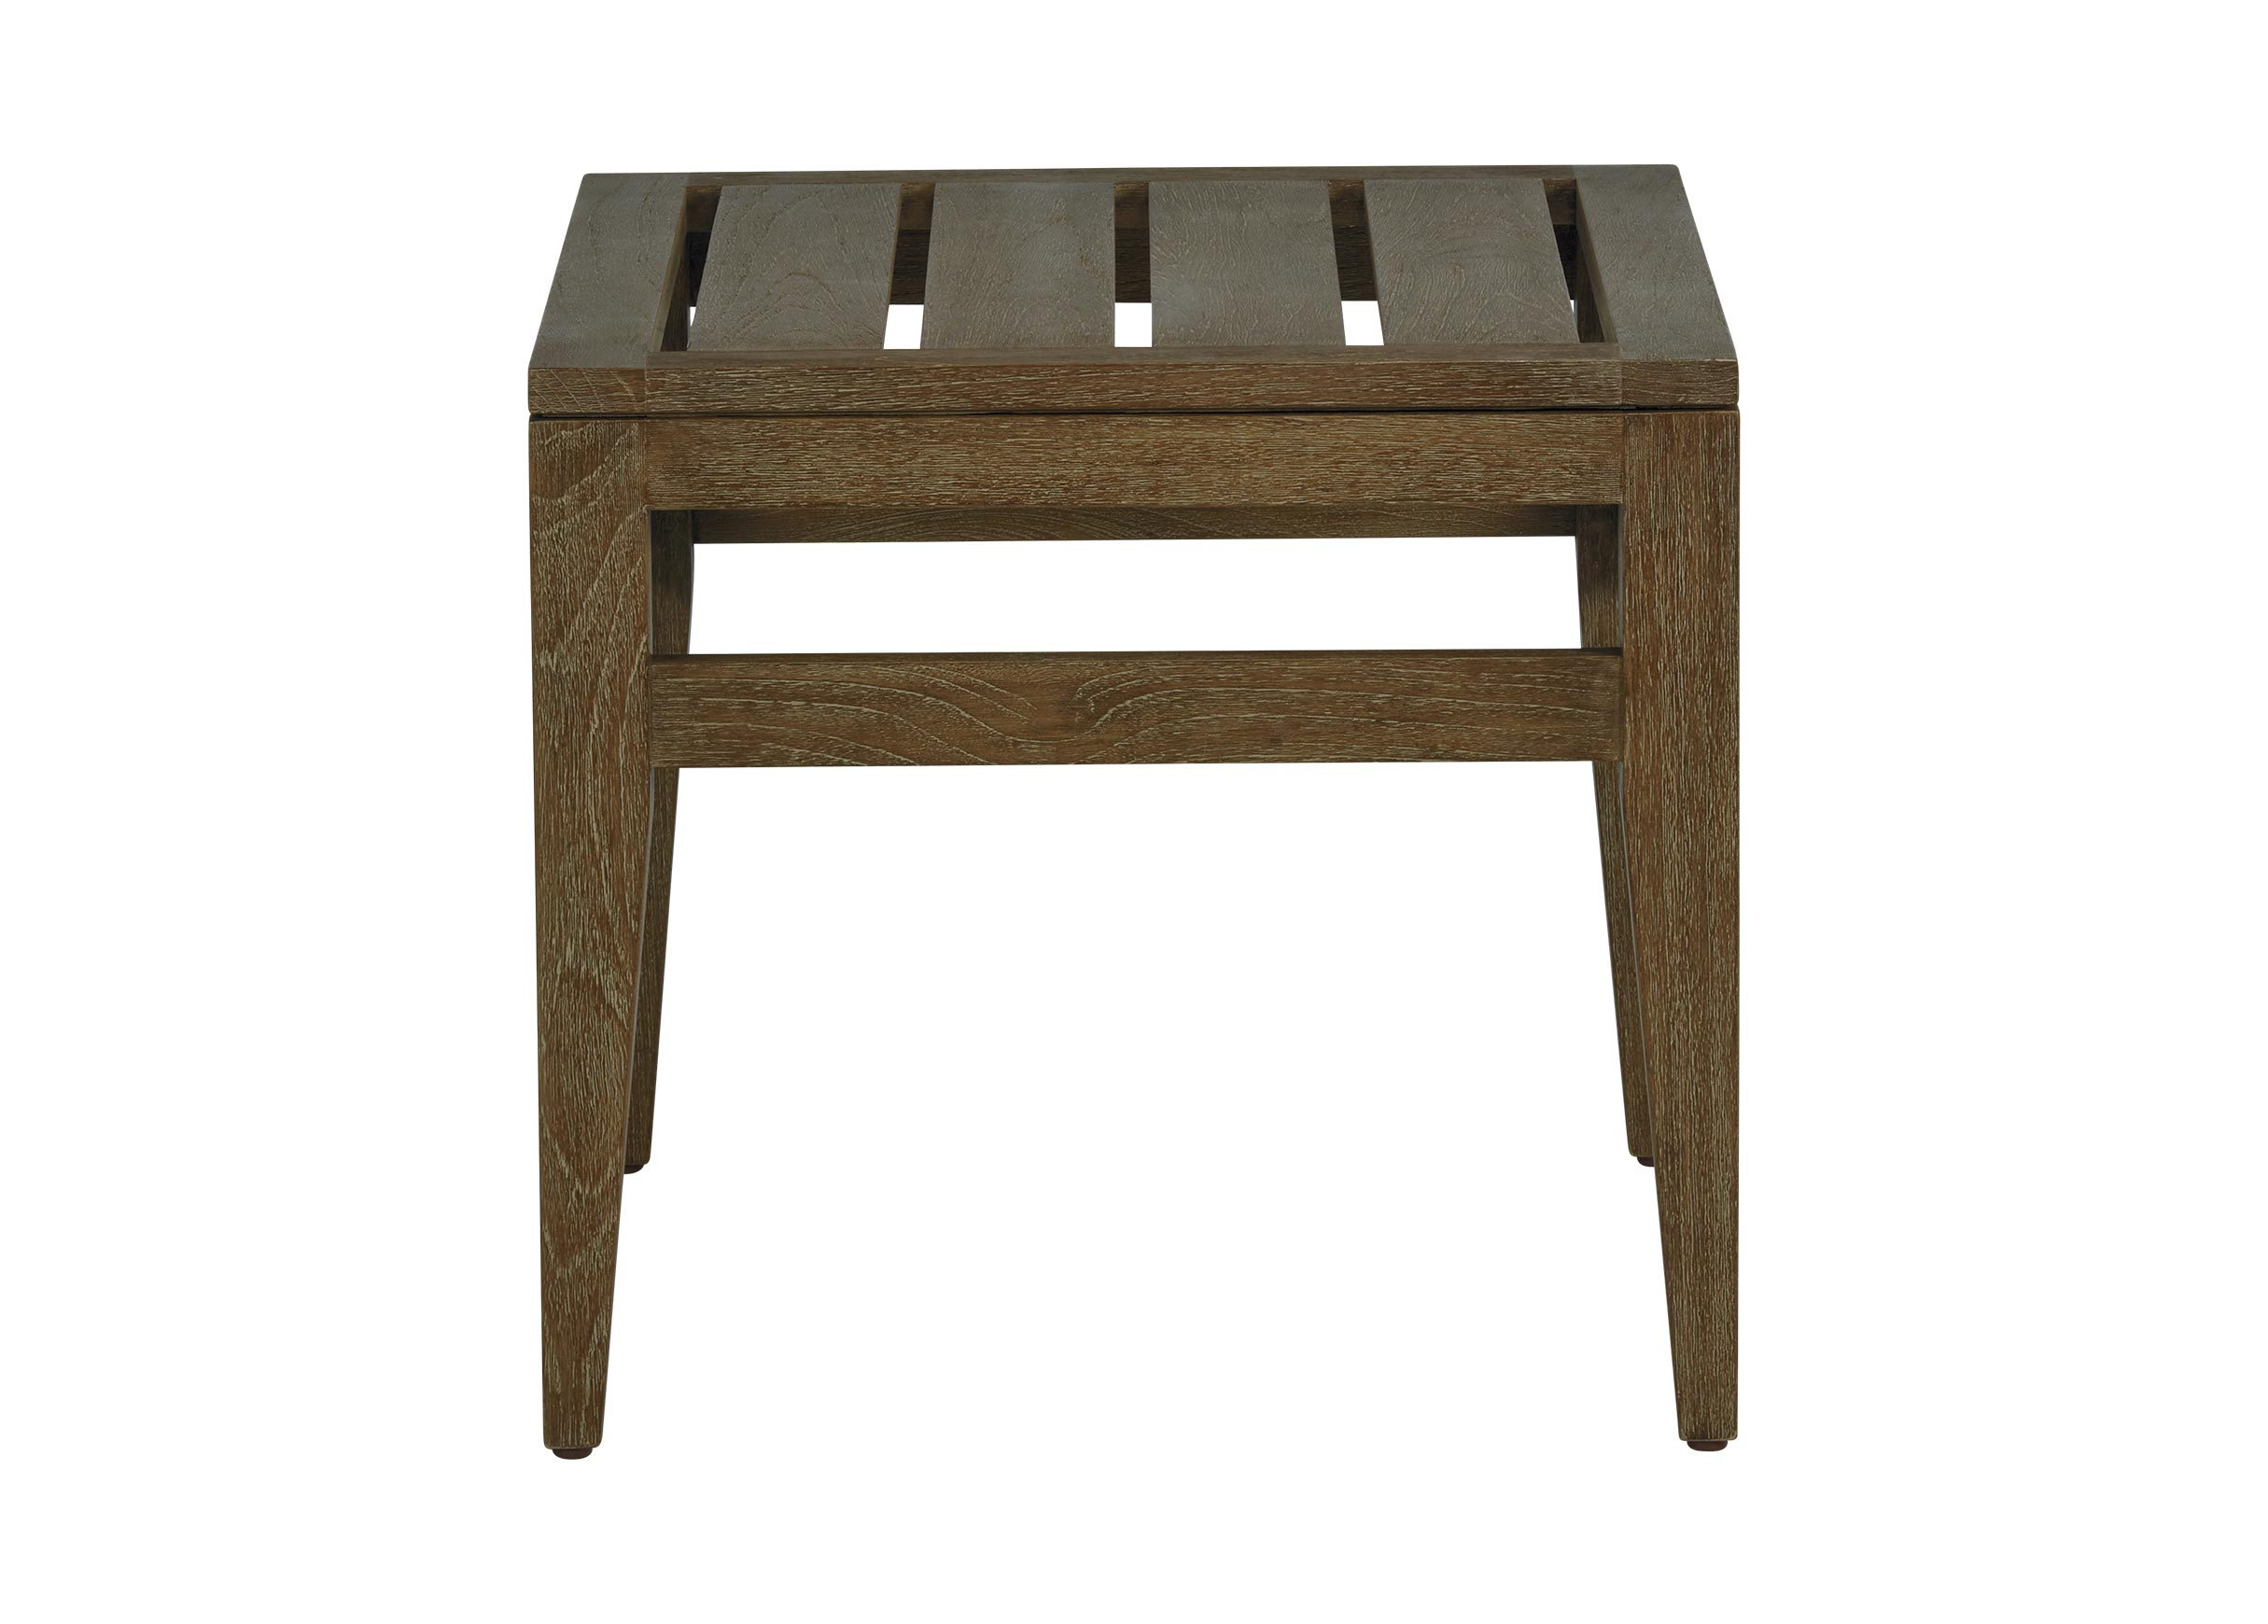 bridgewater cove teak wood outdoor side table ethan allen accent previous inside barn doors corner cabinet living room space saver inexpensive tables pulaski furniture sheesham